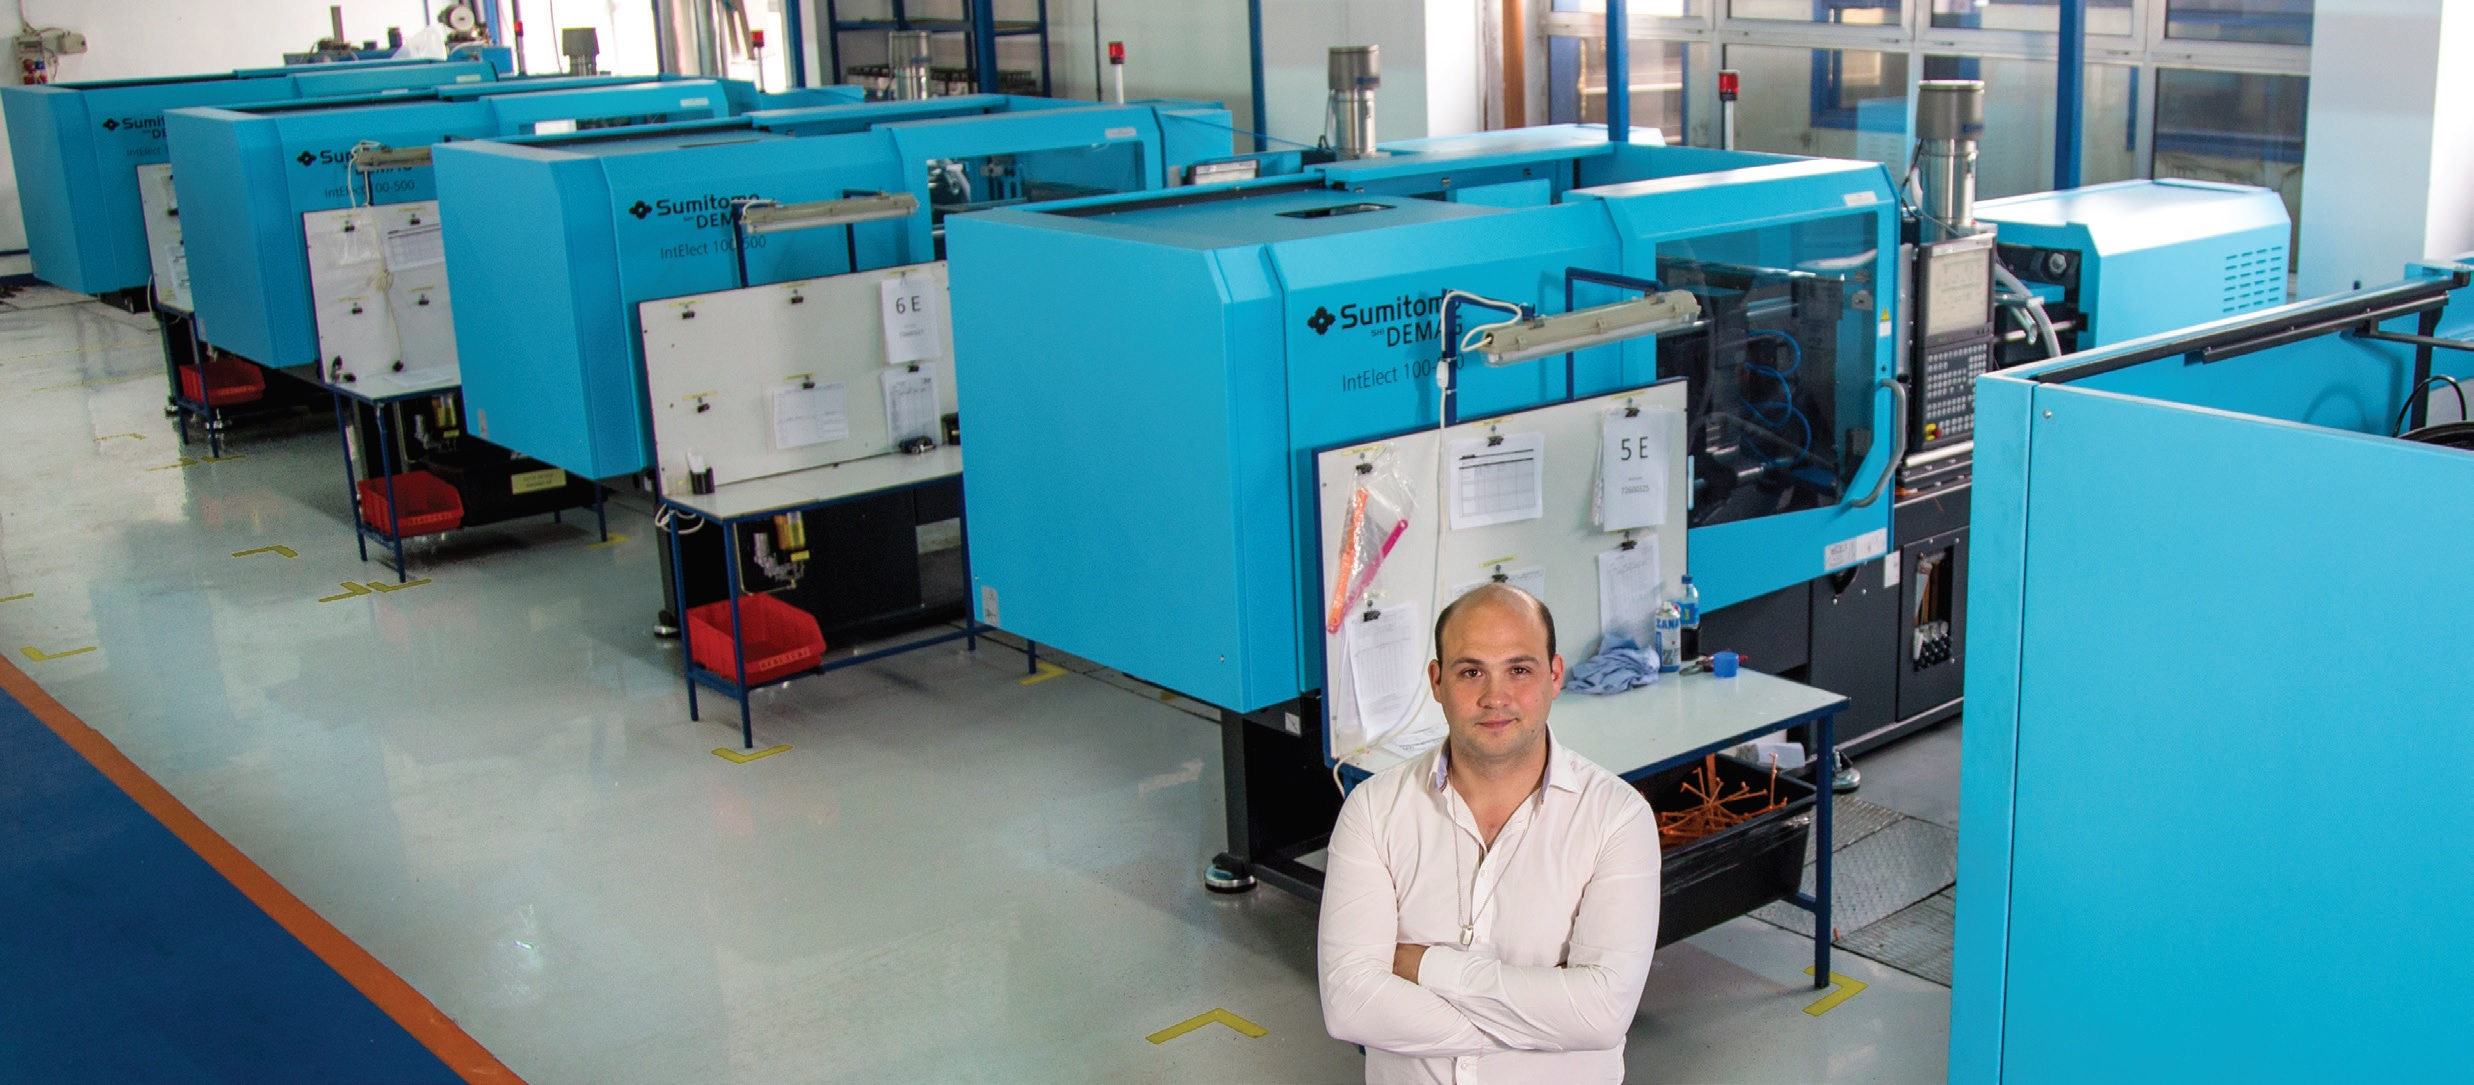 Faster and more efficient. The All-electric injection molding machine wins the race